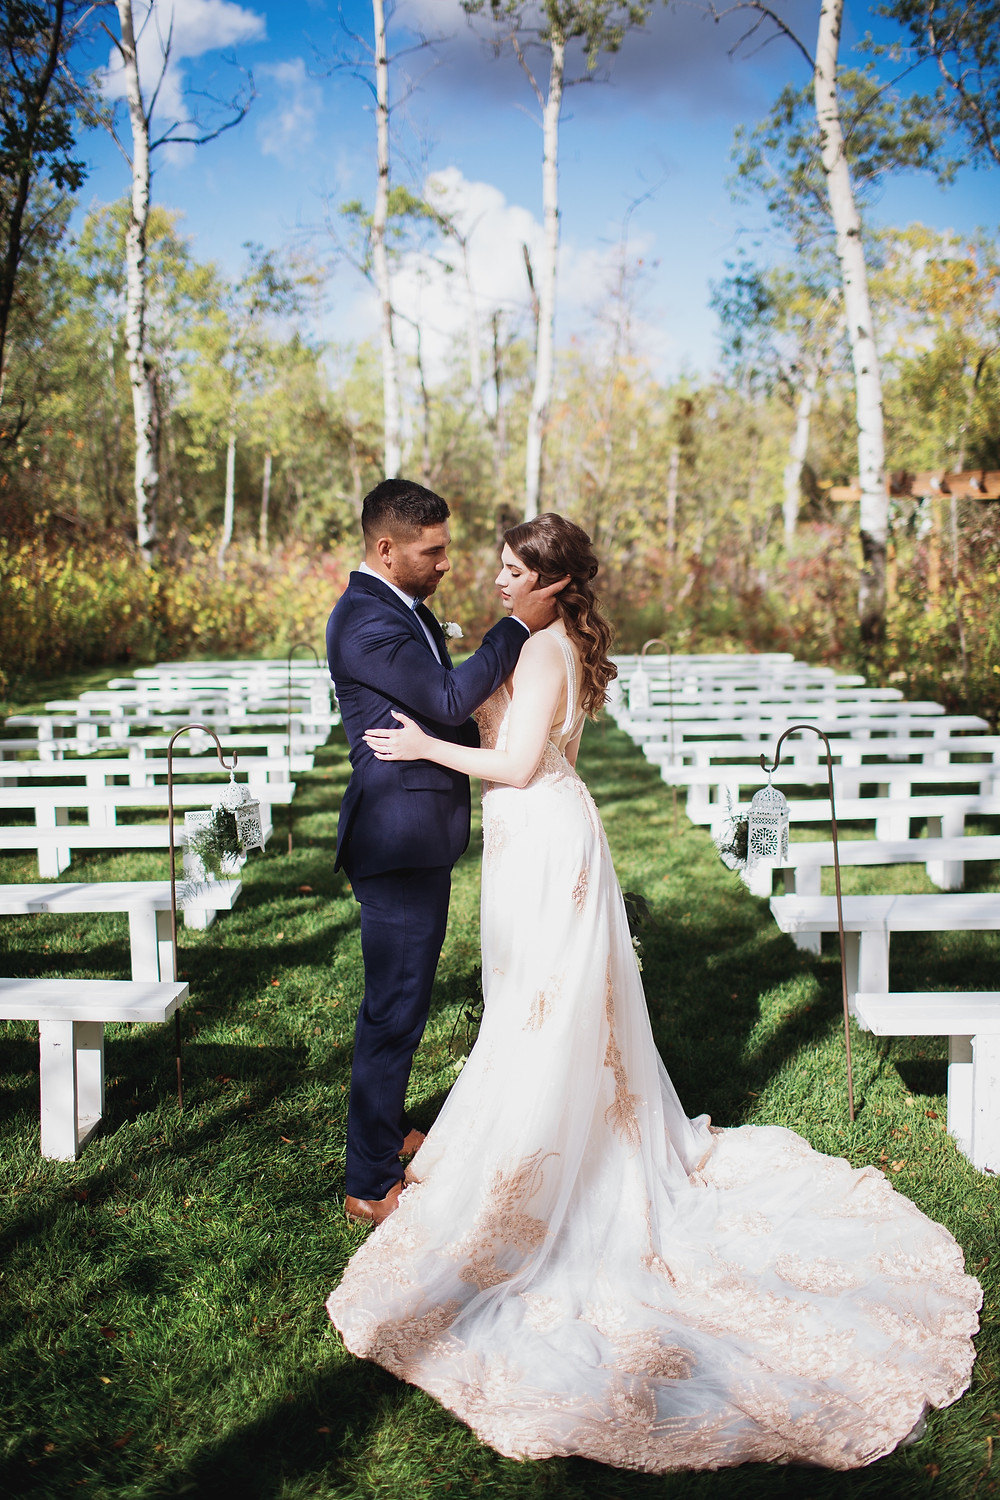 Navy groom's suit by Eph Apparels, blush wedding gown by Anna Lang Bridal